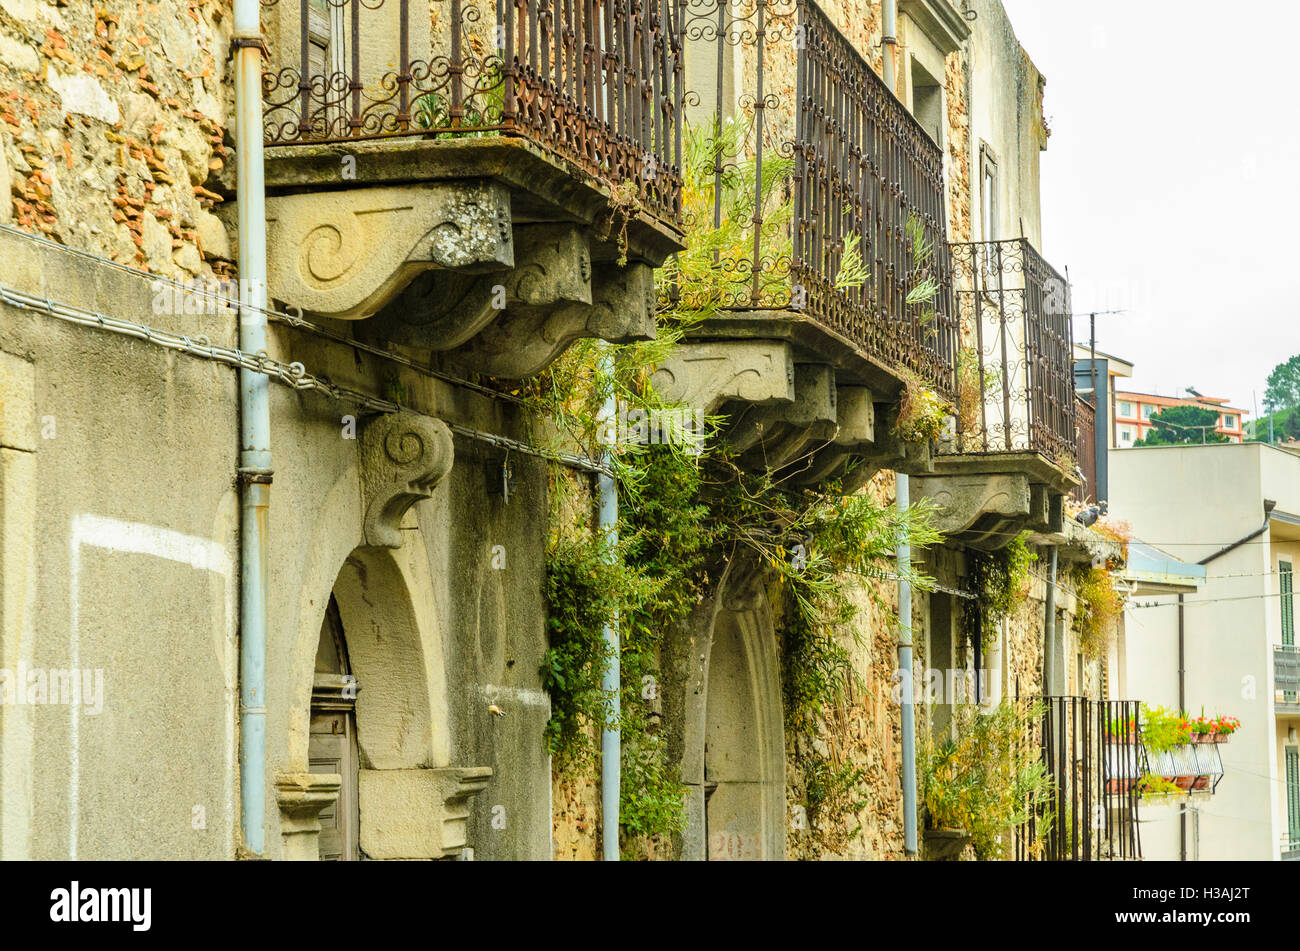 Weeds grow around balconies in the town of Montalbano Elicona in the Province of Messina, Sicily, Italy - Stock Image